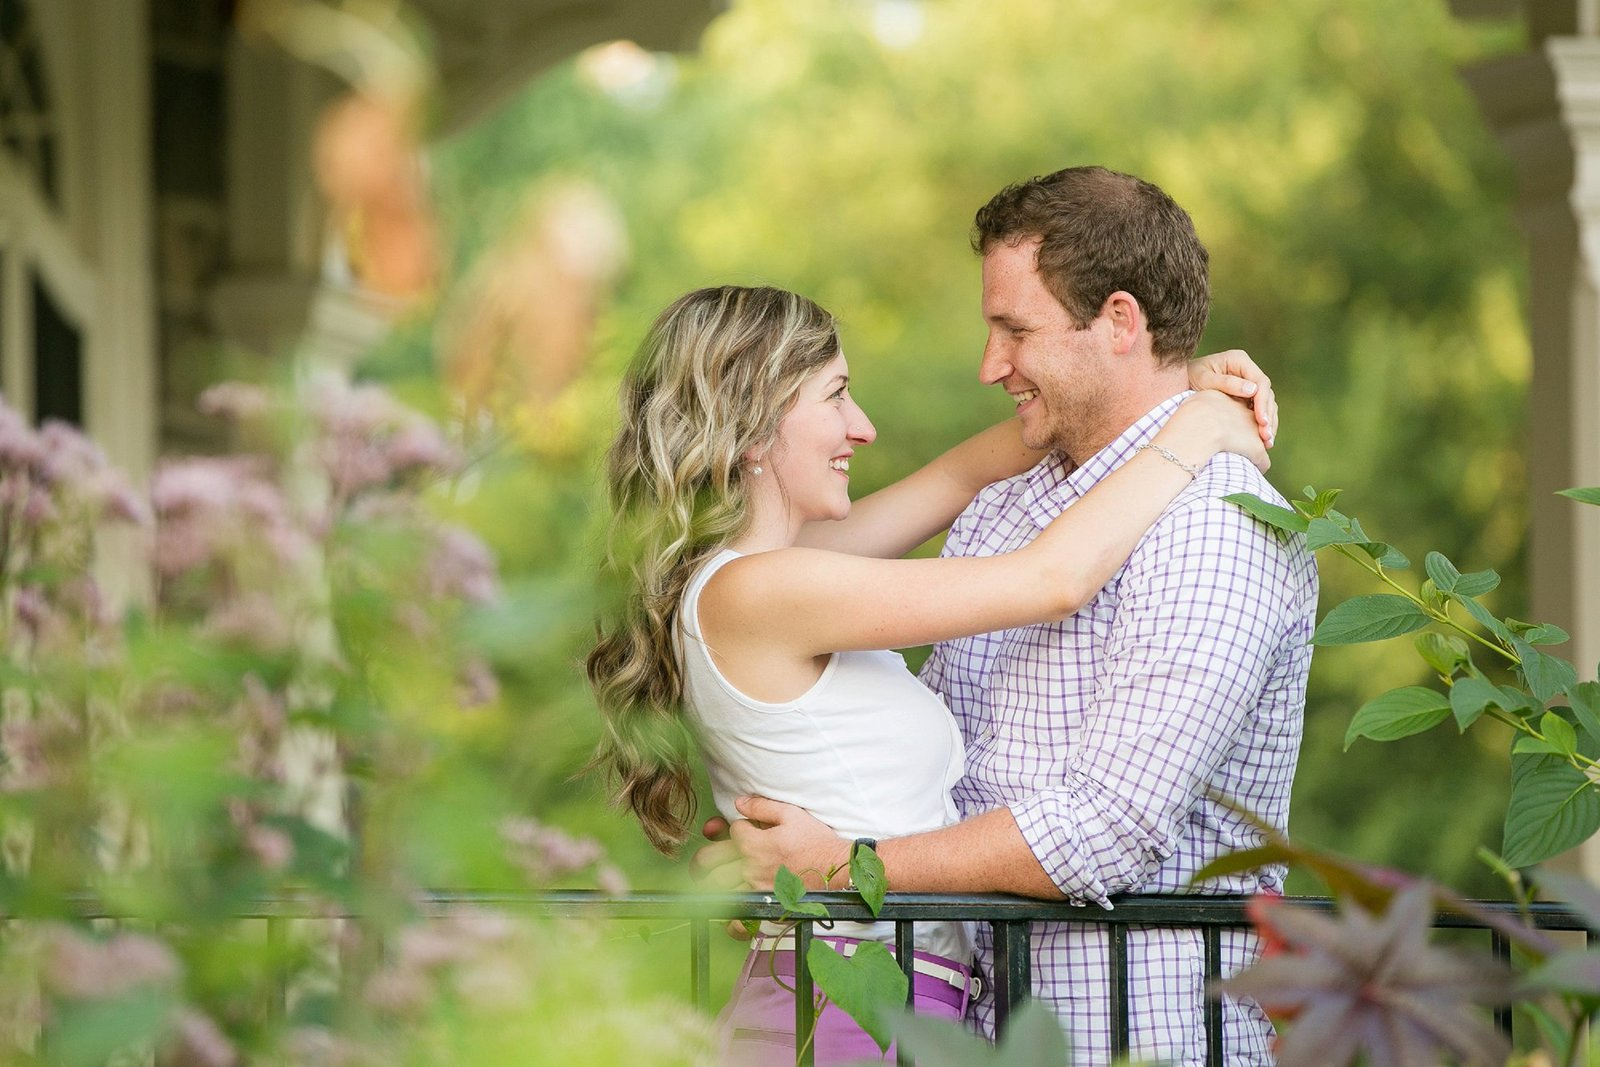 Adrienne_Sean_Engagement-1053